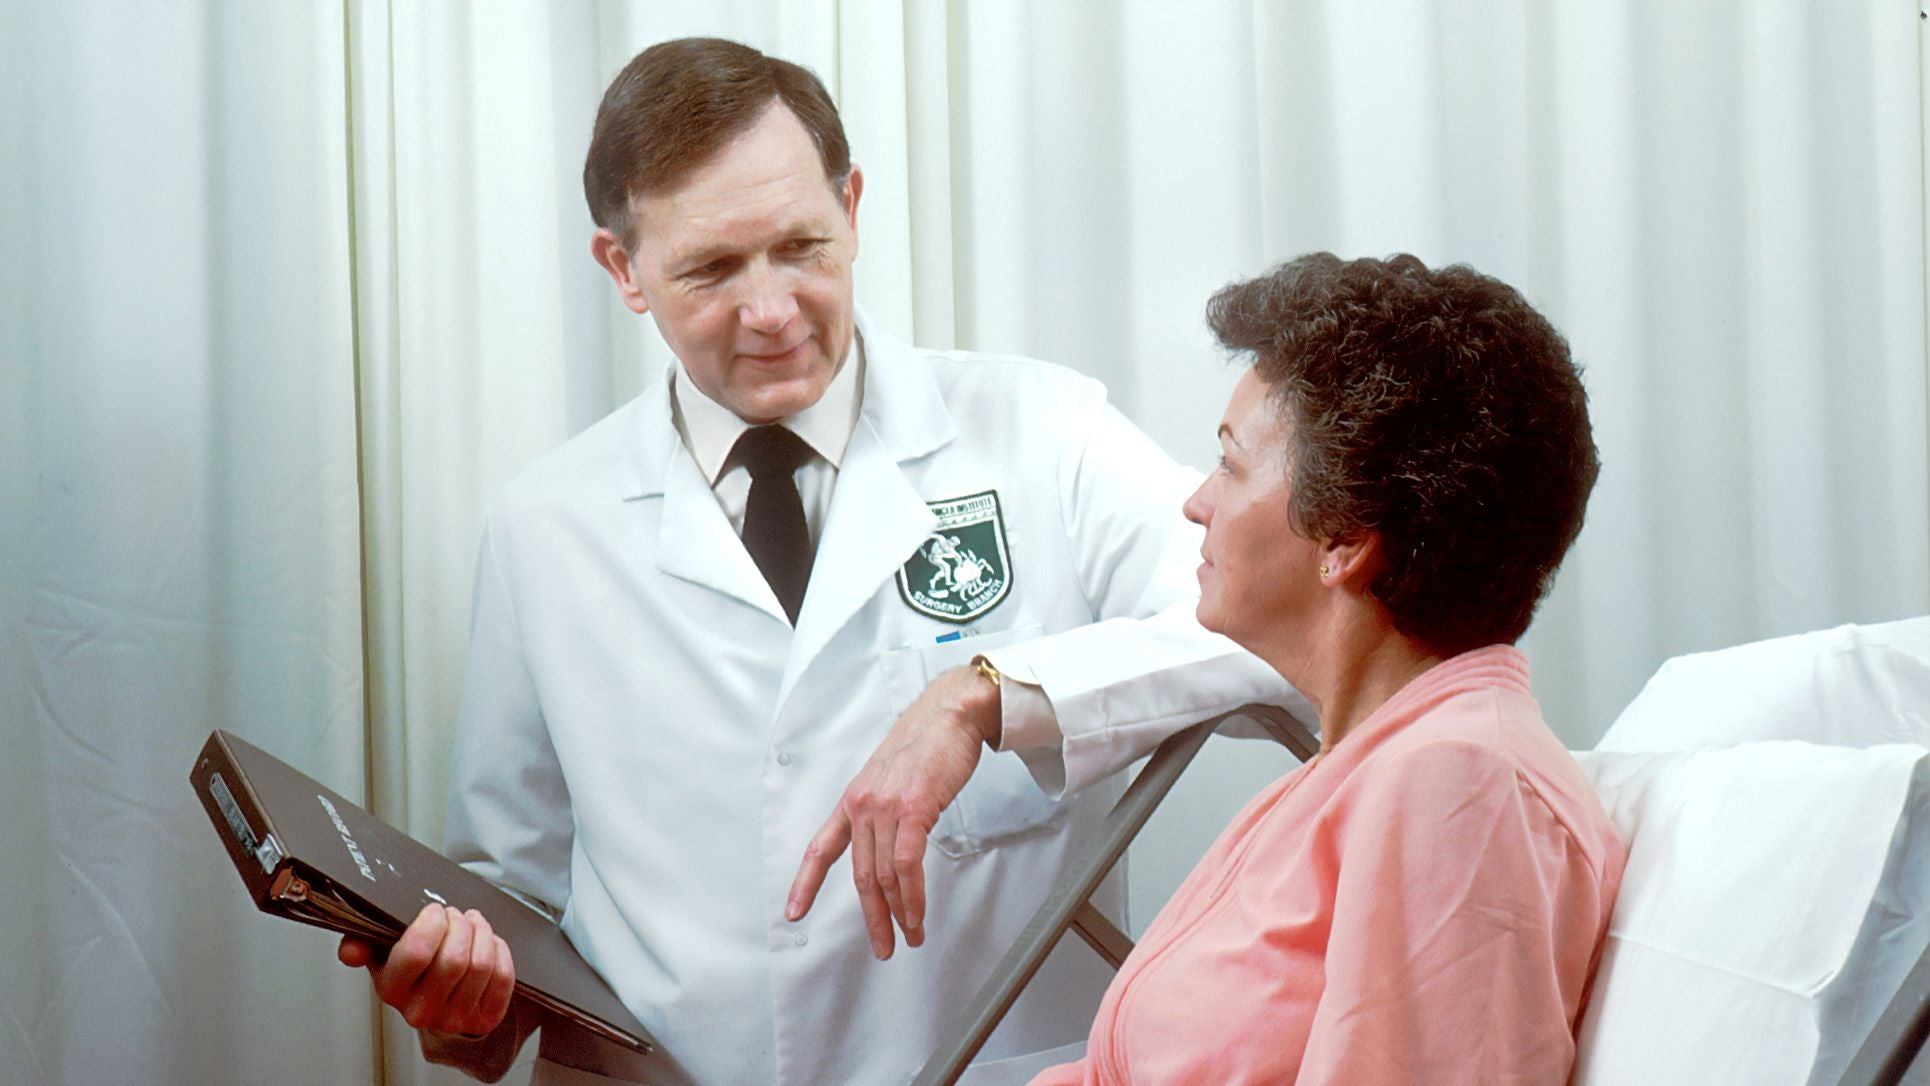 a doctor consulting on receding hairline